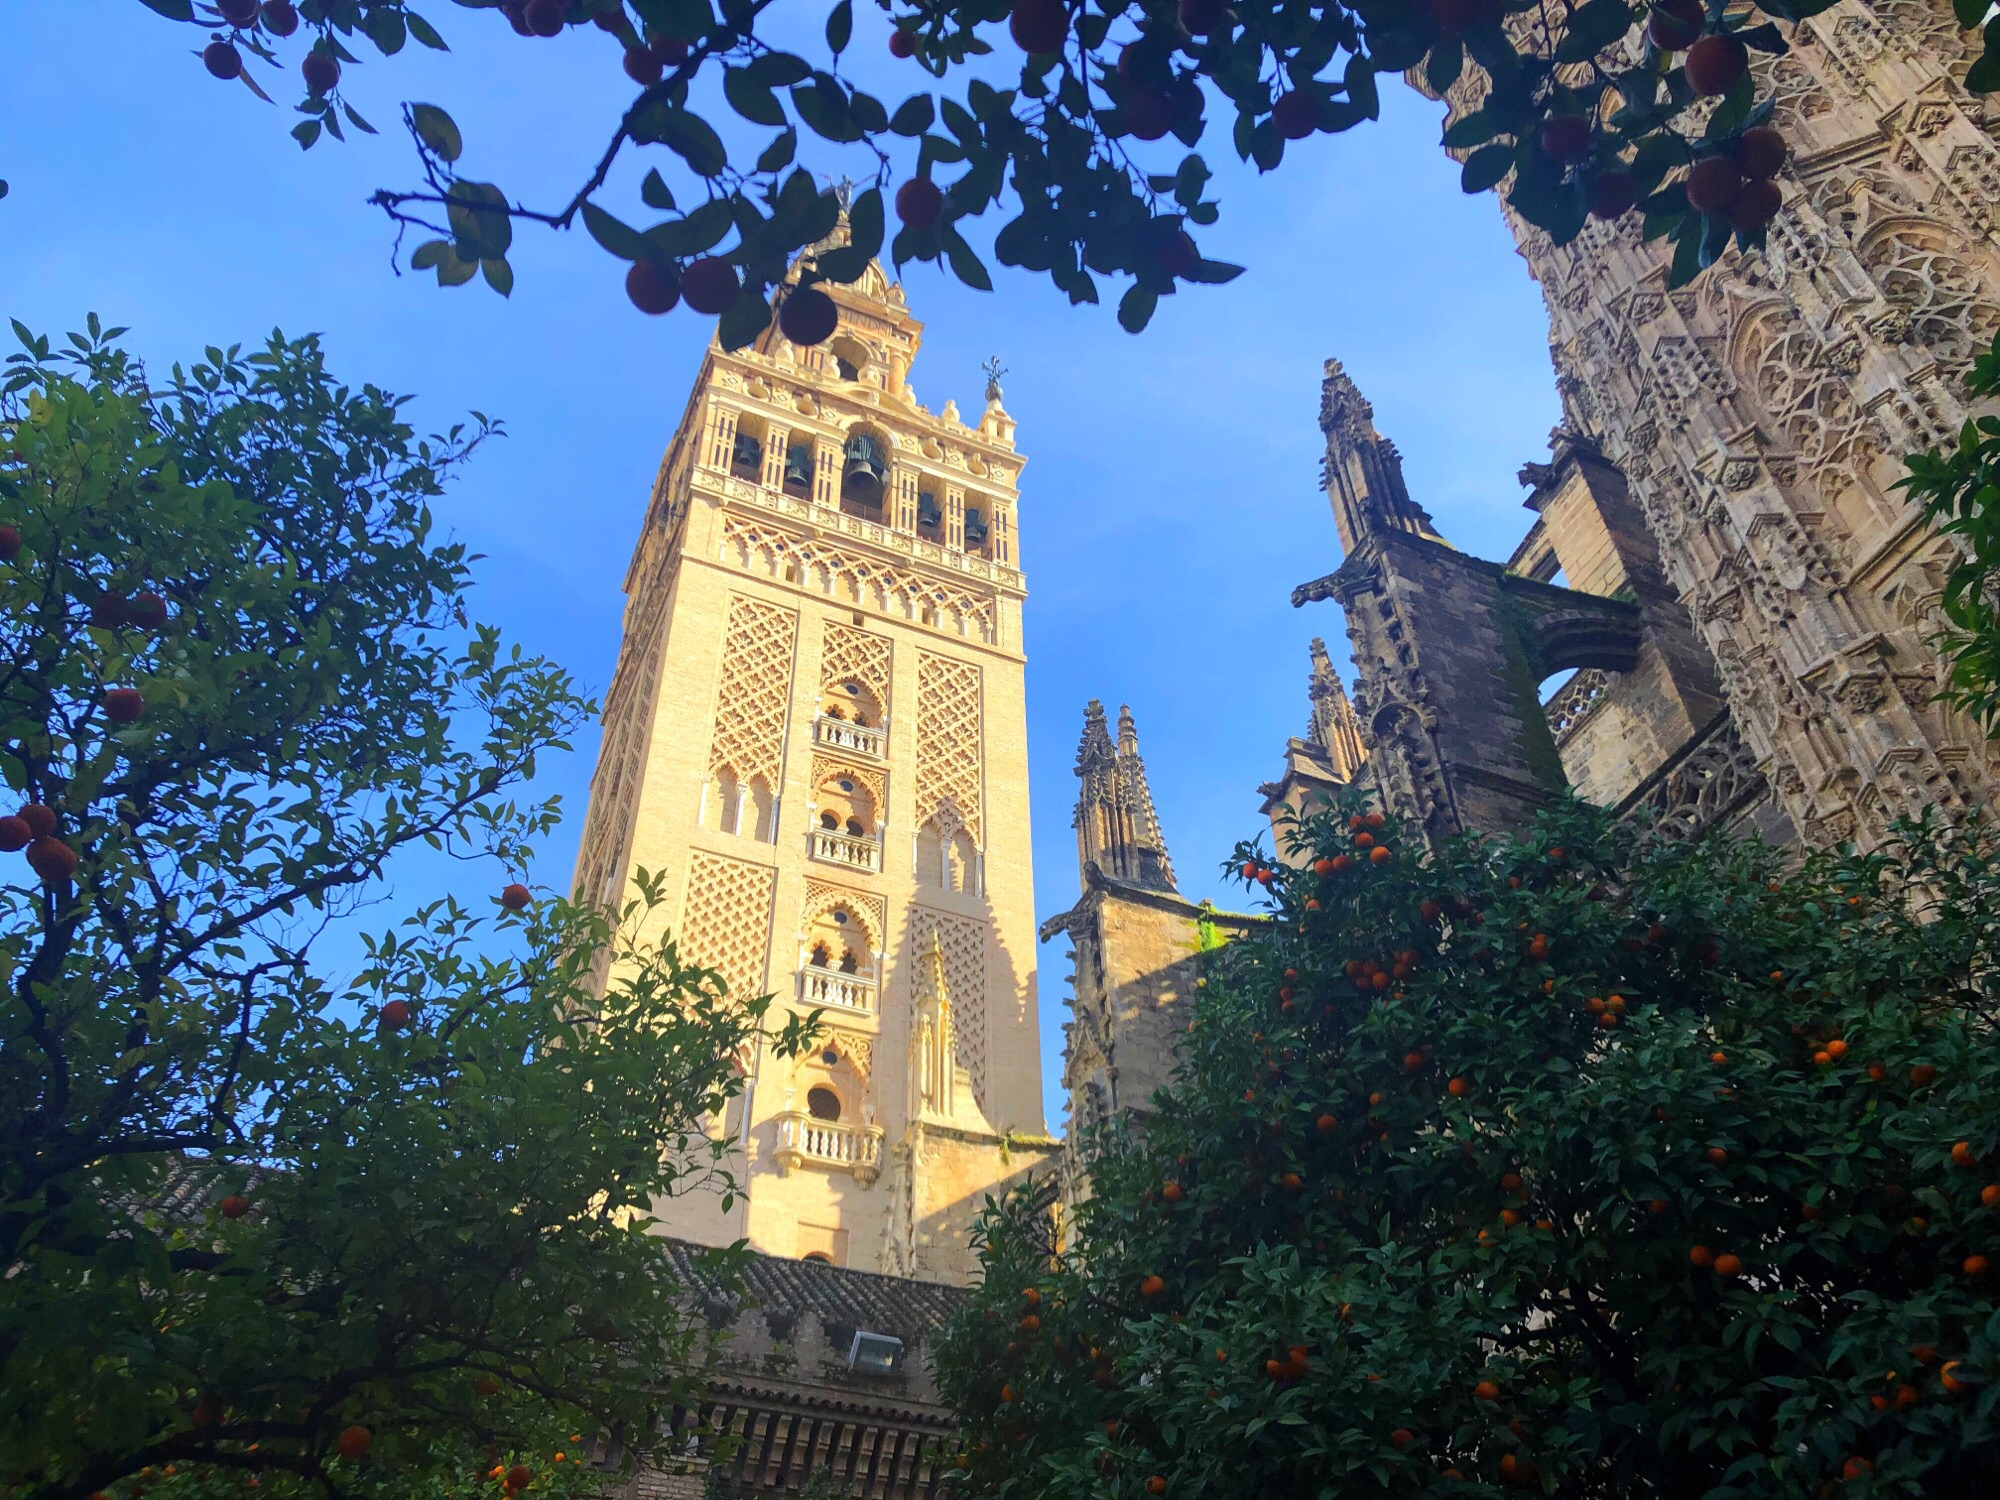 First week in Sevilla: The good, the bad and the oranges